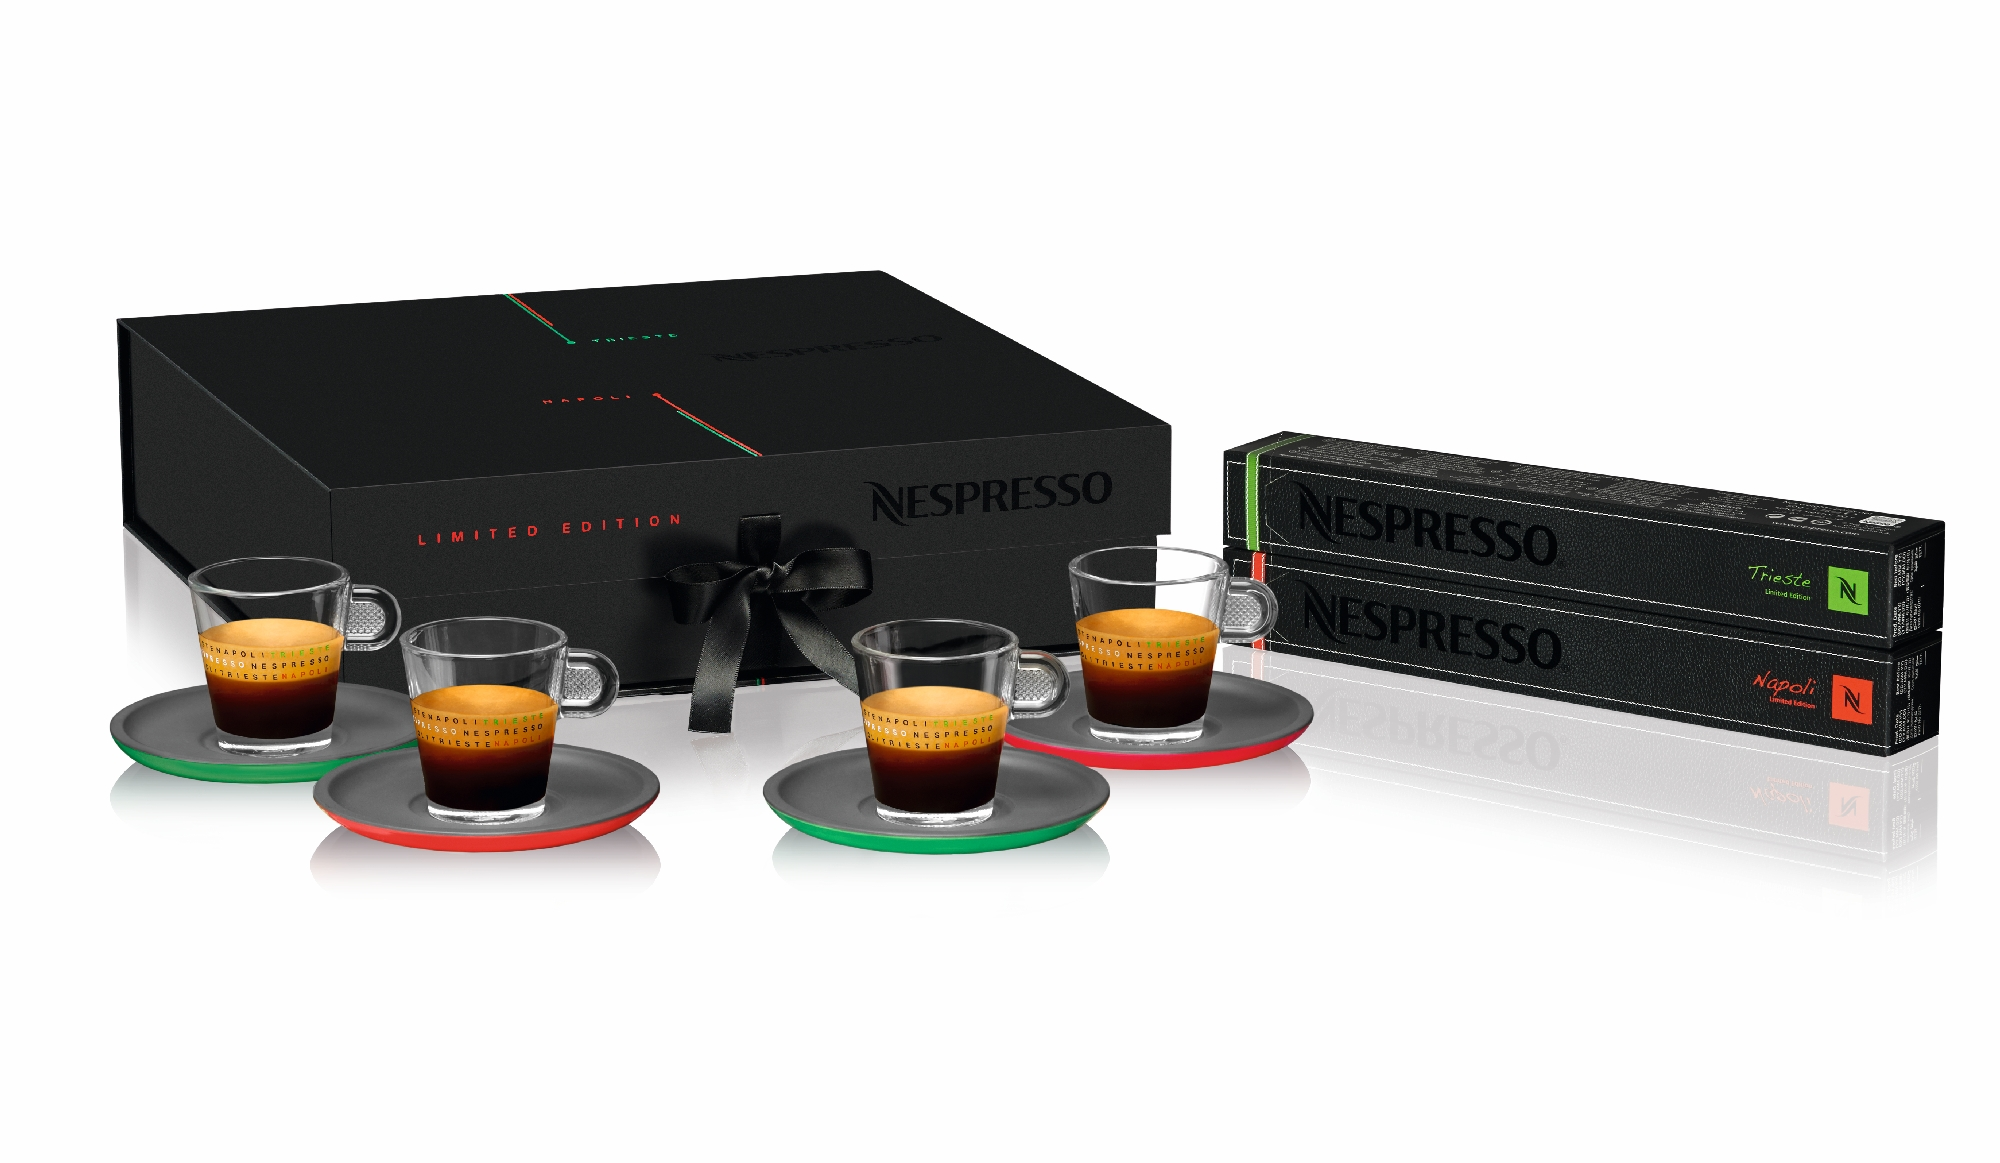 nespresso limited edition